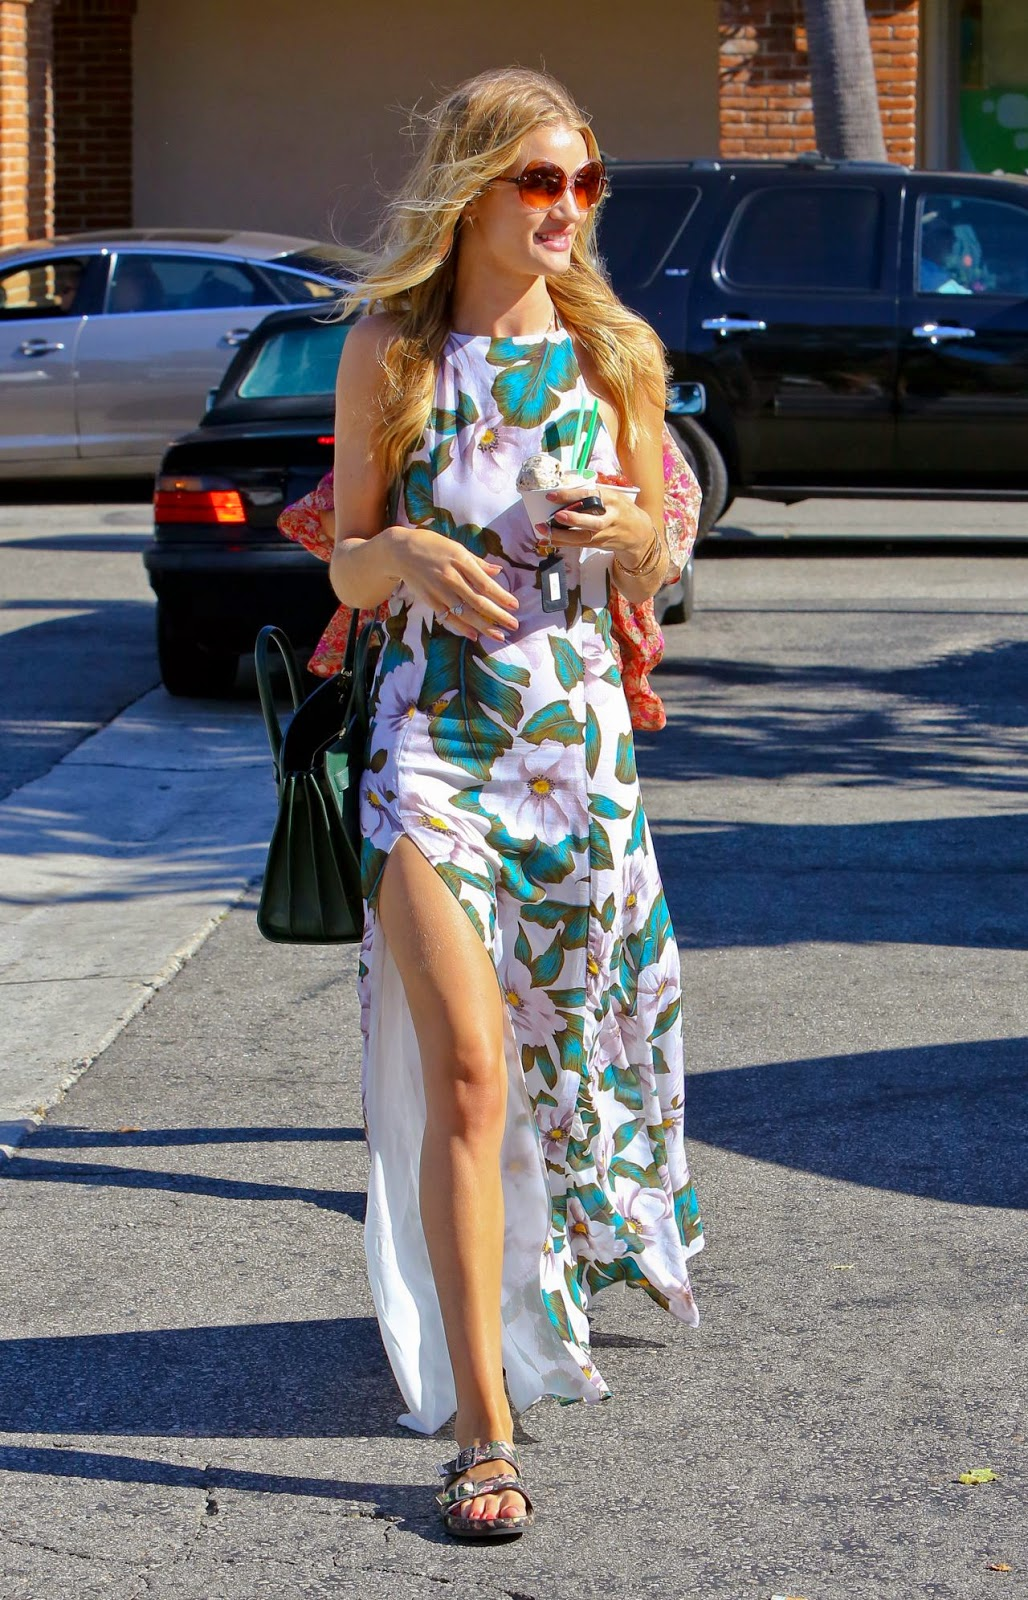 Rosie Huntington-Whiteley pairs floral maxi dress with Givenchy sandals for Malibu outing